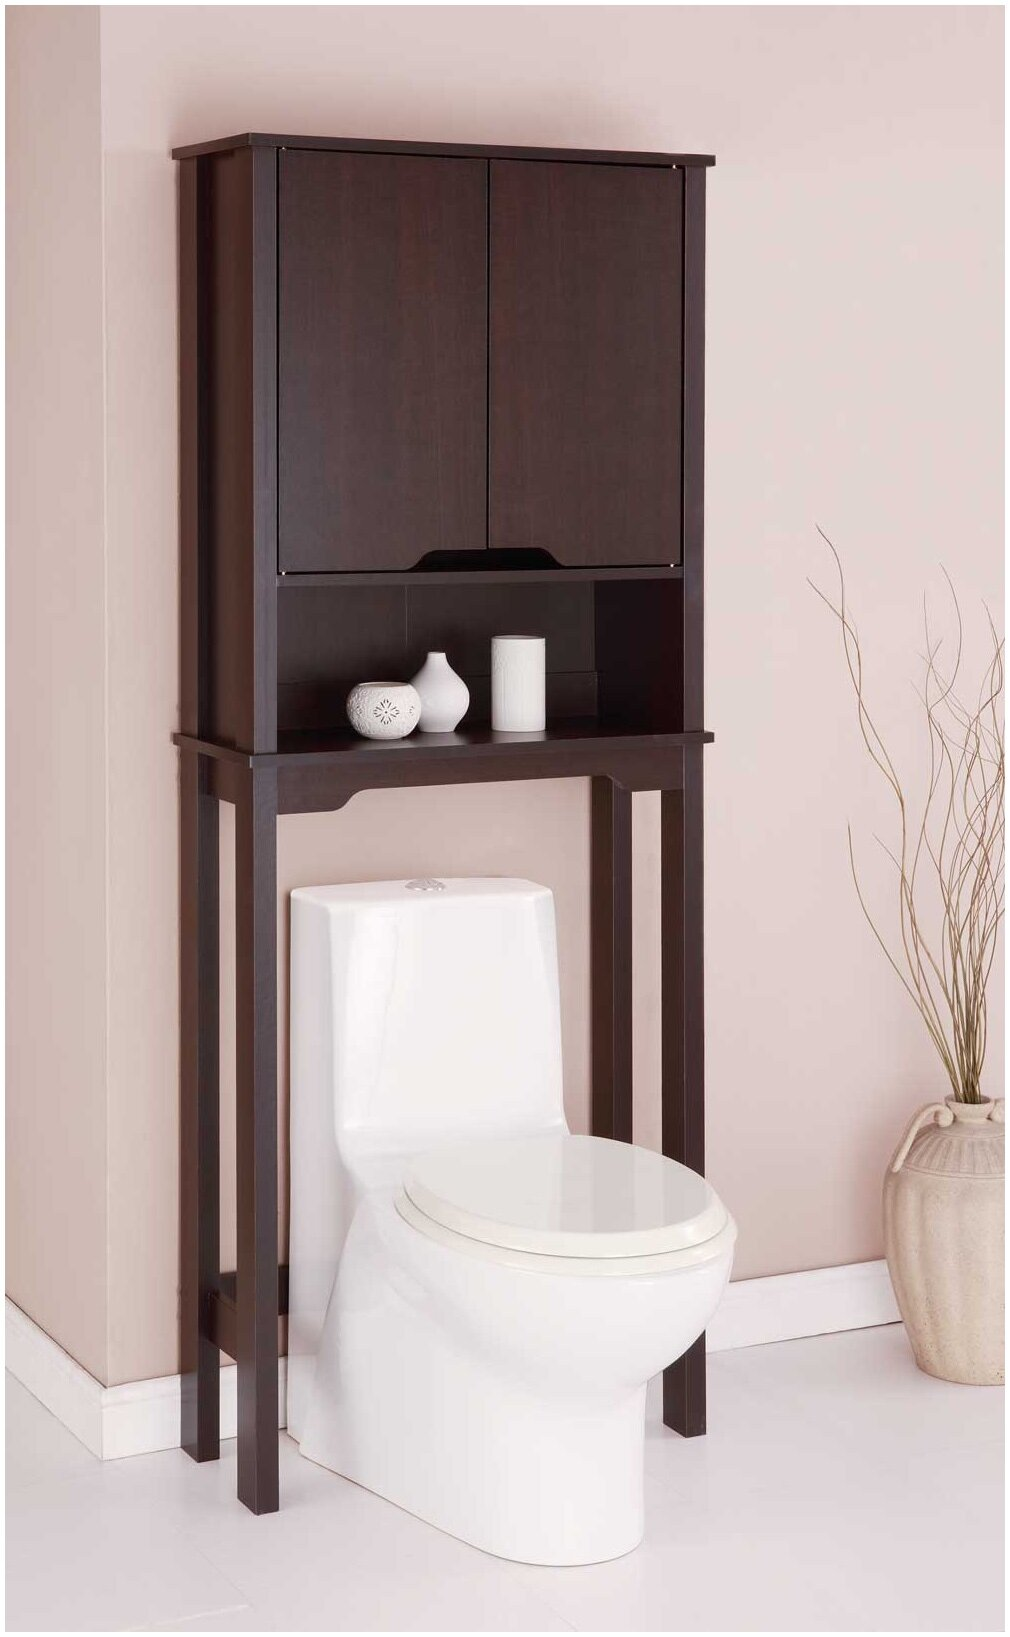 Bathroom Toilet Etagere Oak Bathroom Space Saver Over Toilet Over The Toilet Etagere Ikea